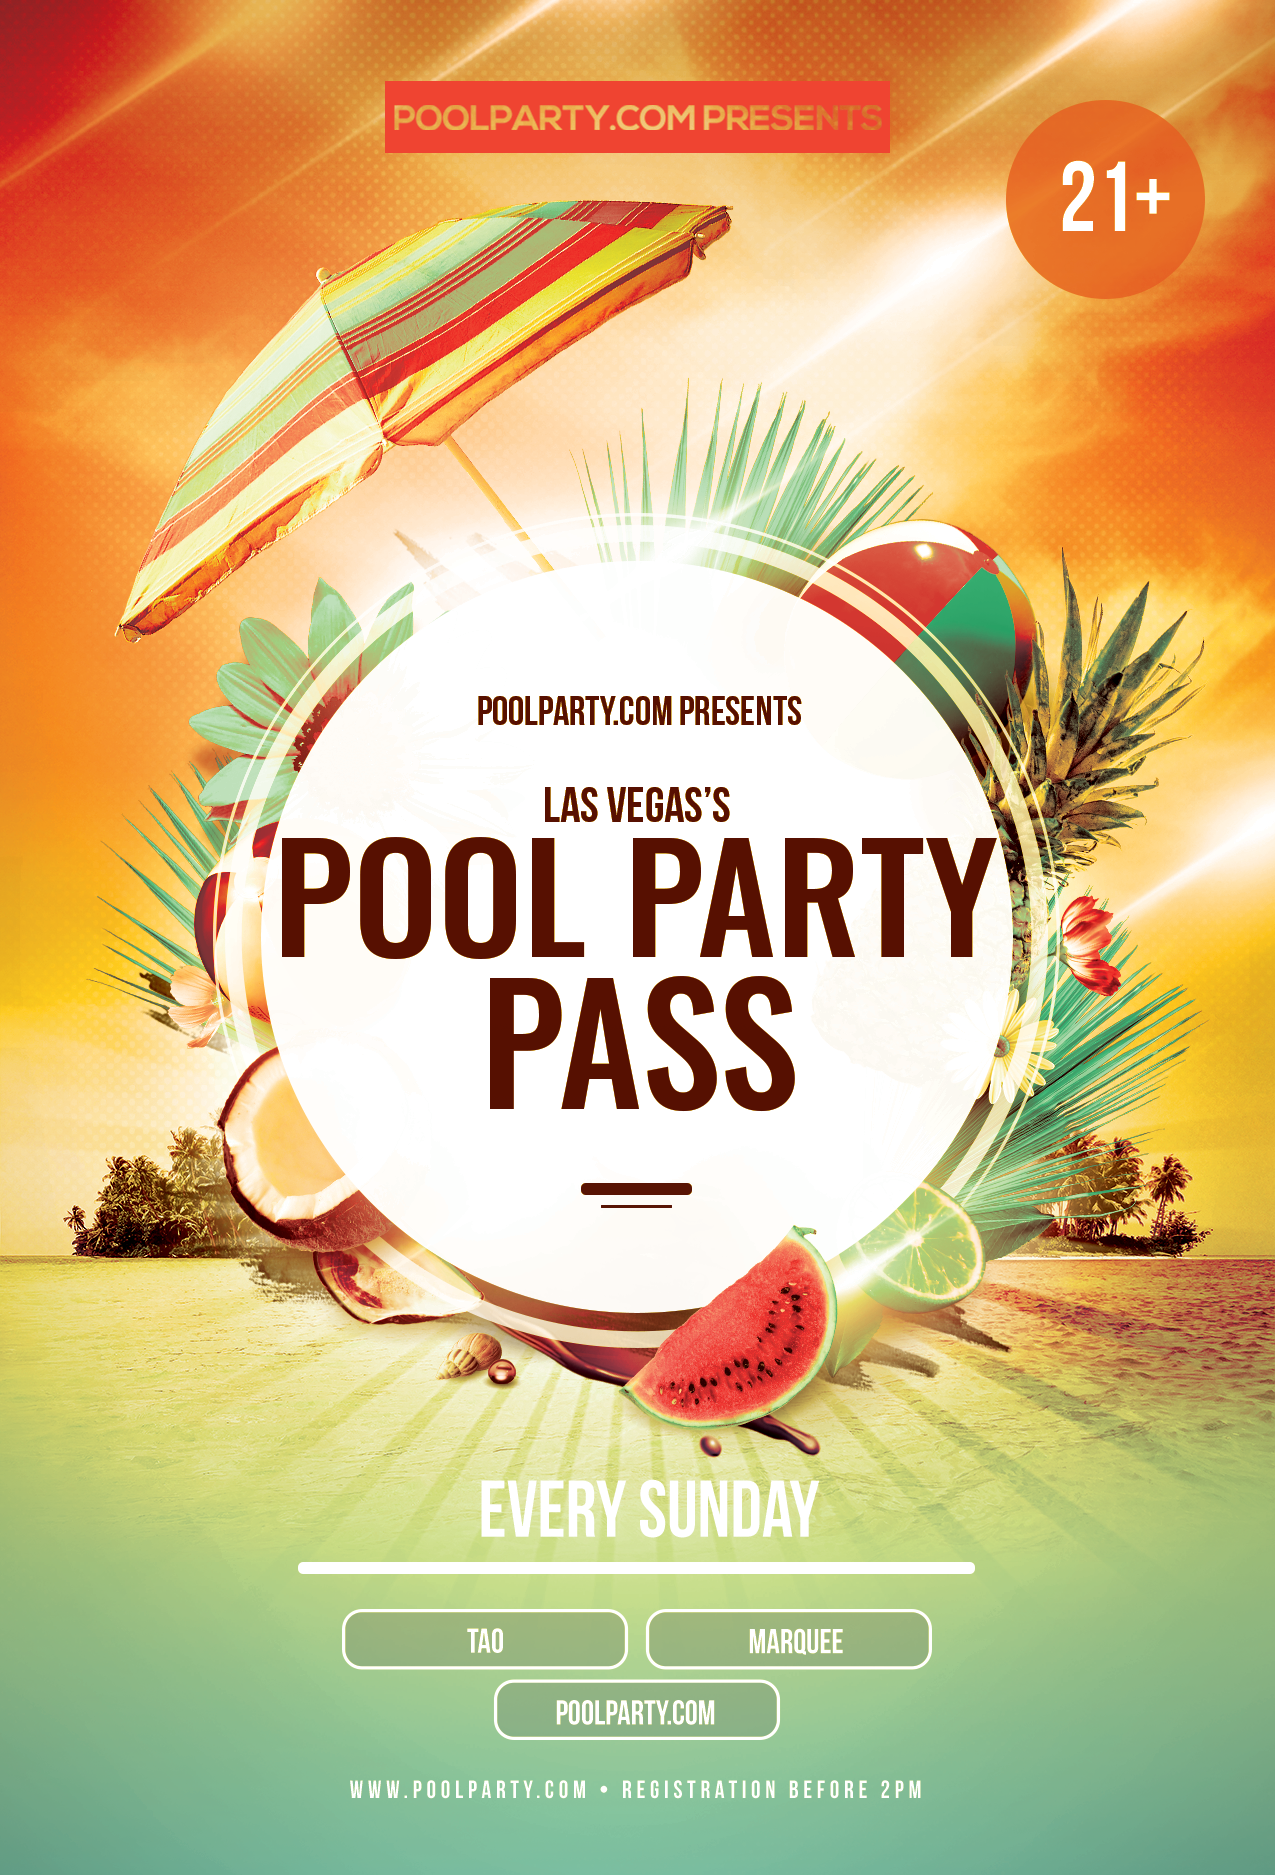 Sunday's Pool Party Pass (April 26th 2020)